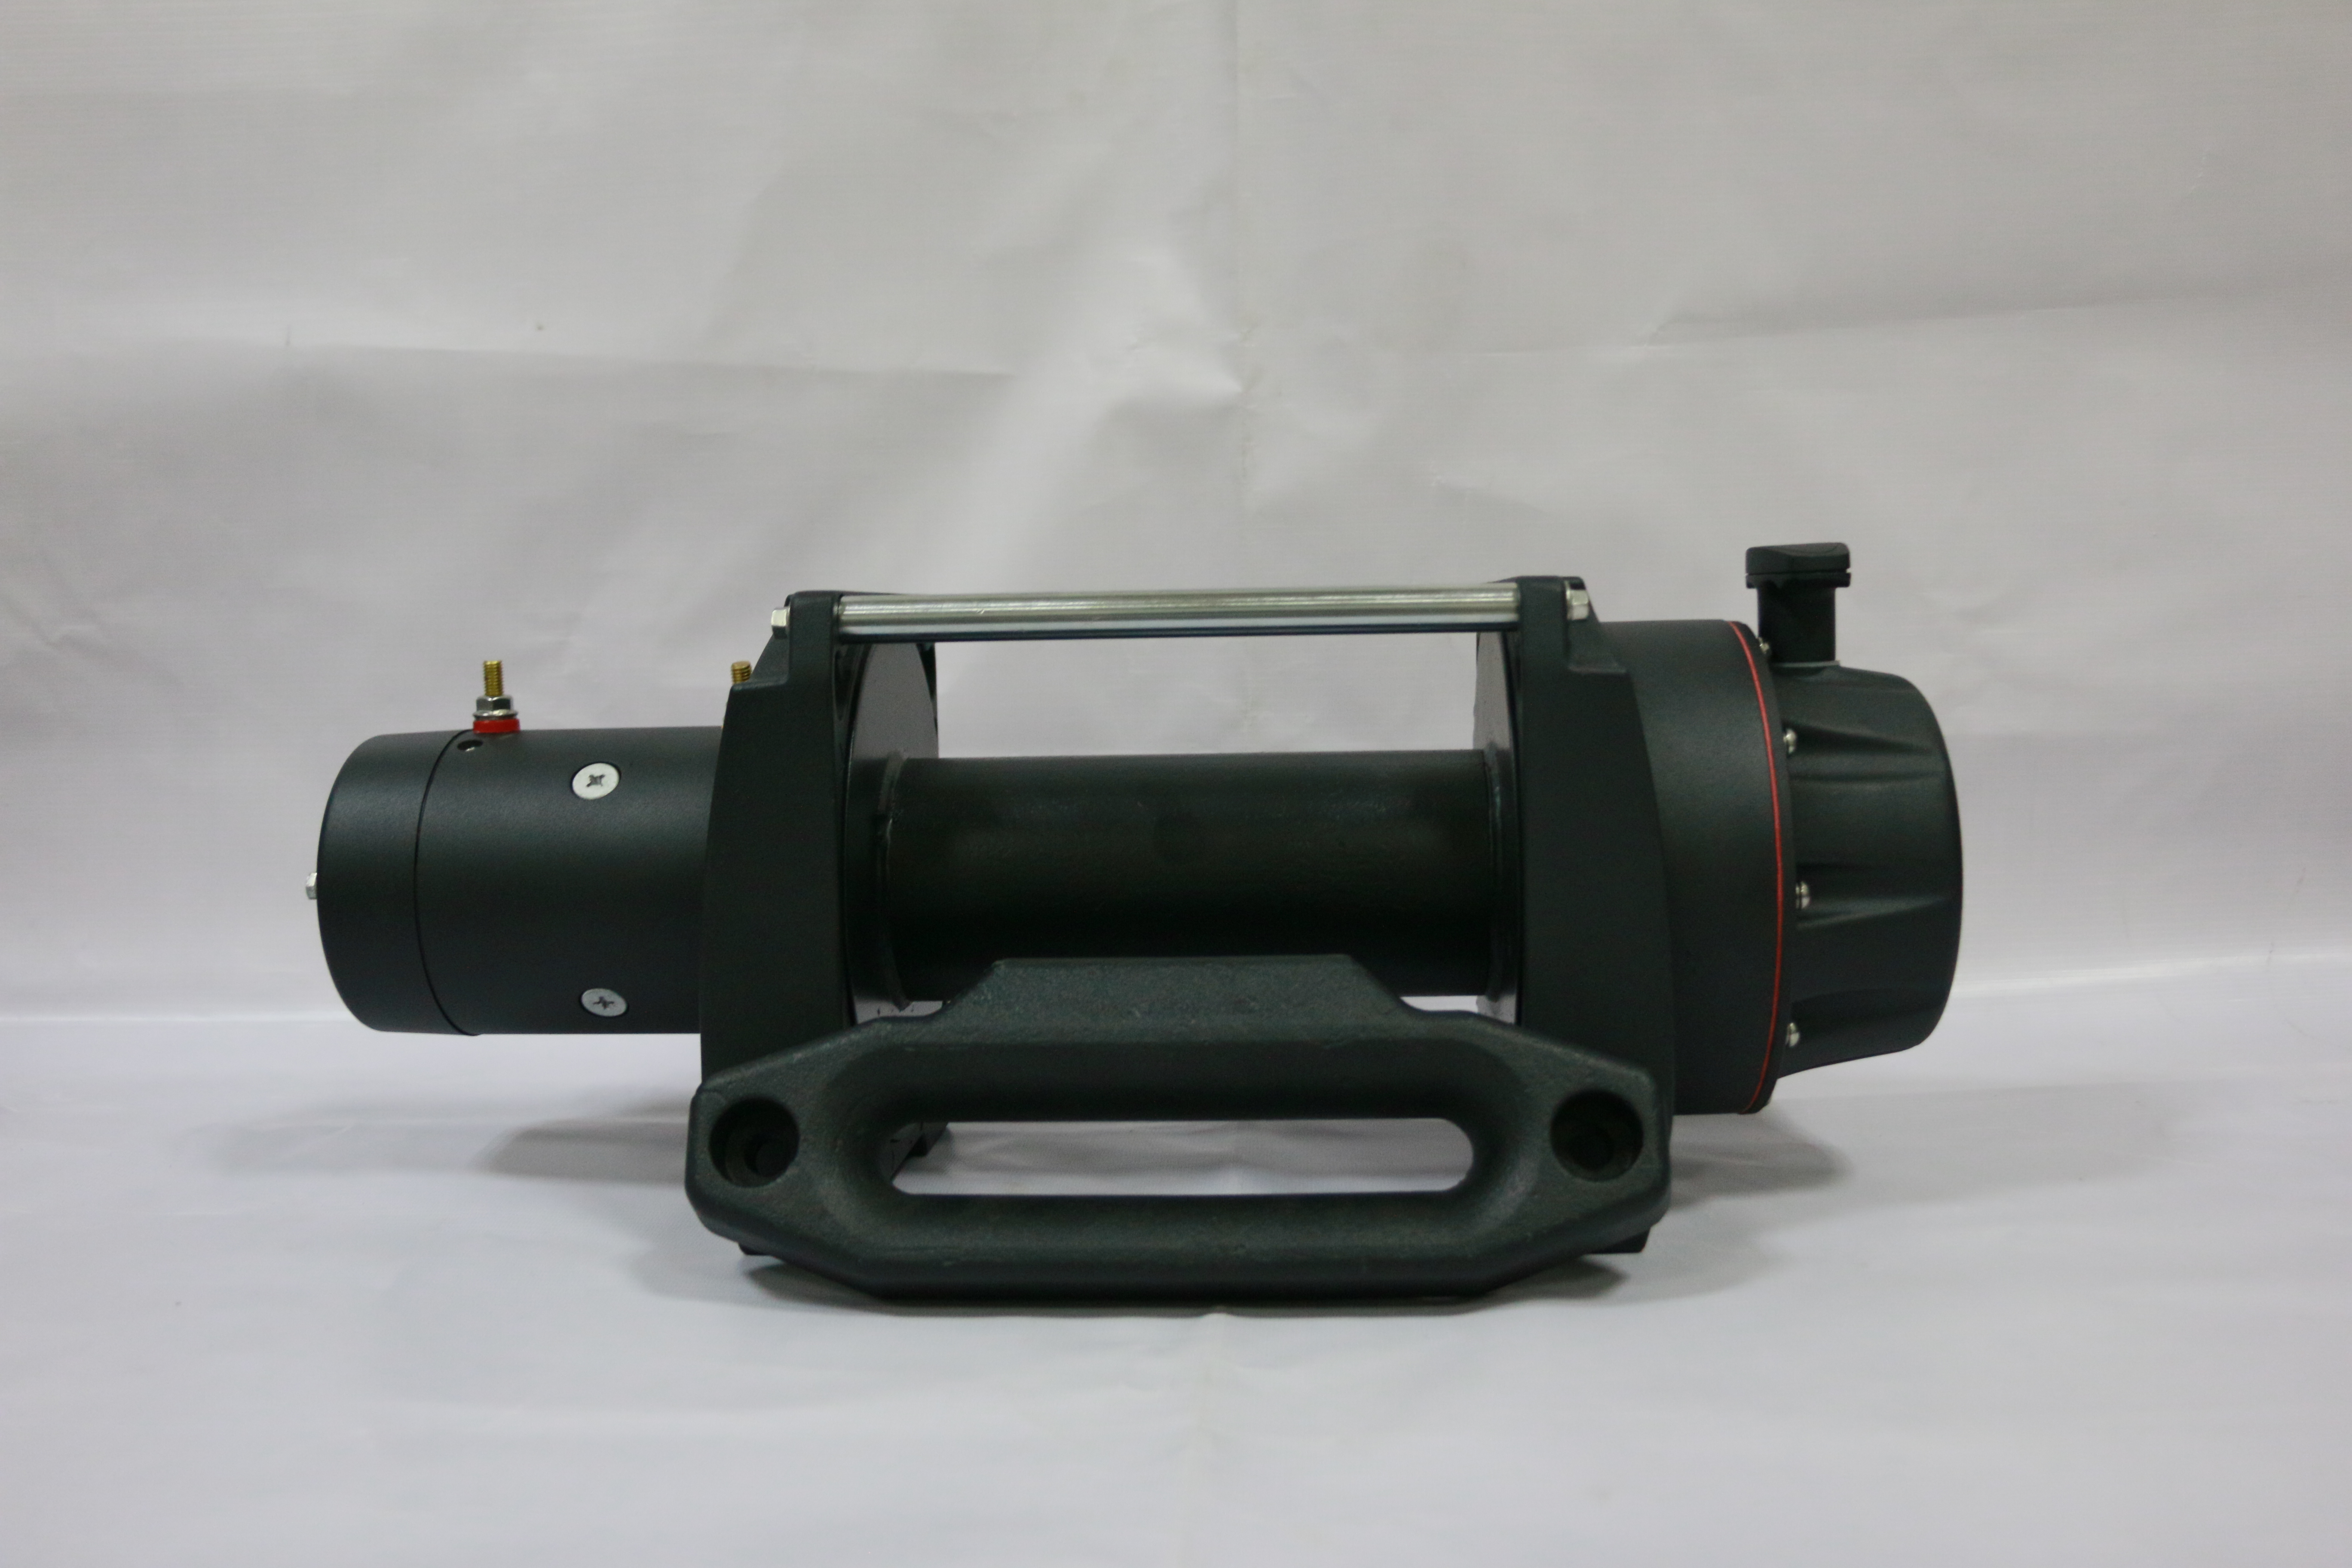 12V/24V NEW heavy duty winch 20000lbs with die-casting iron fairlead